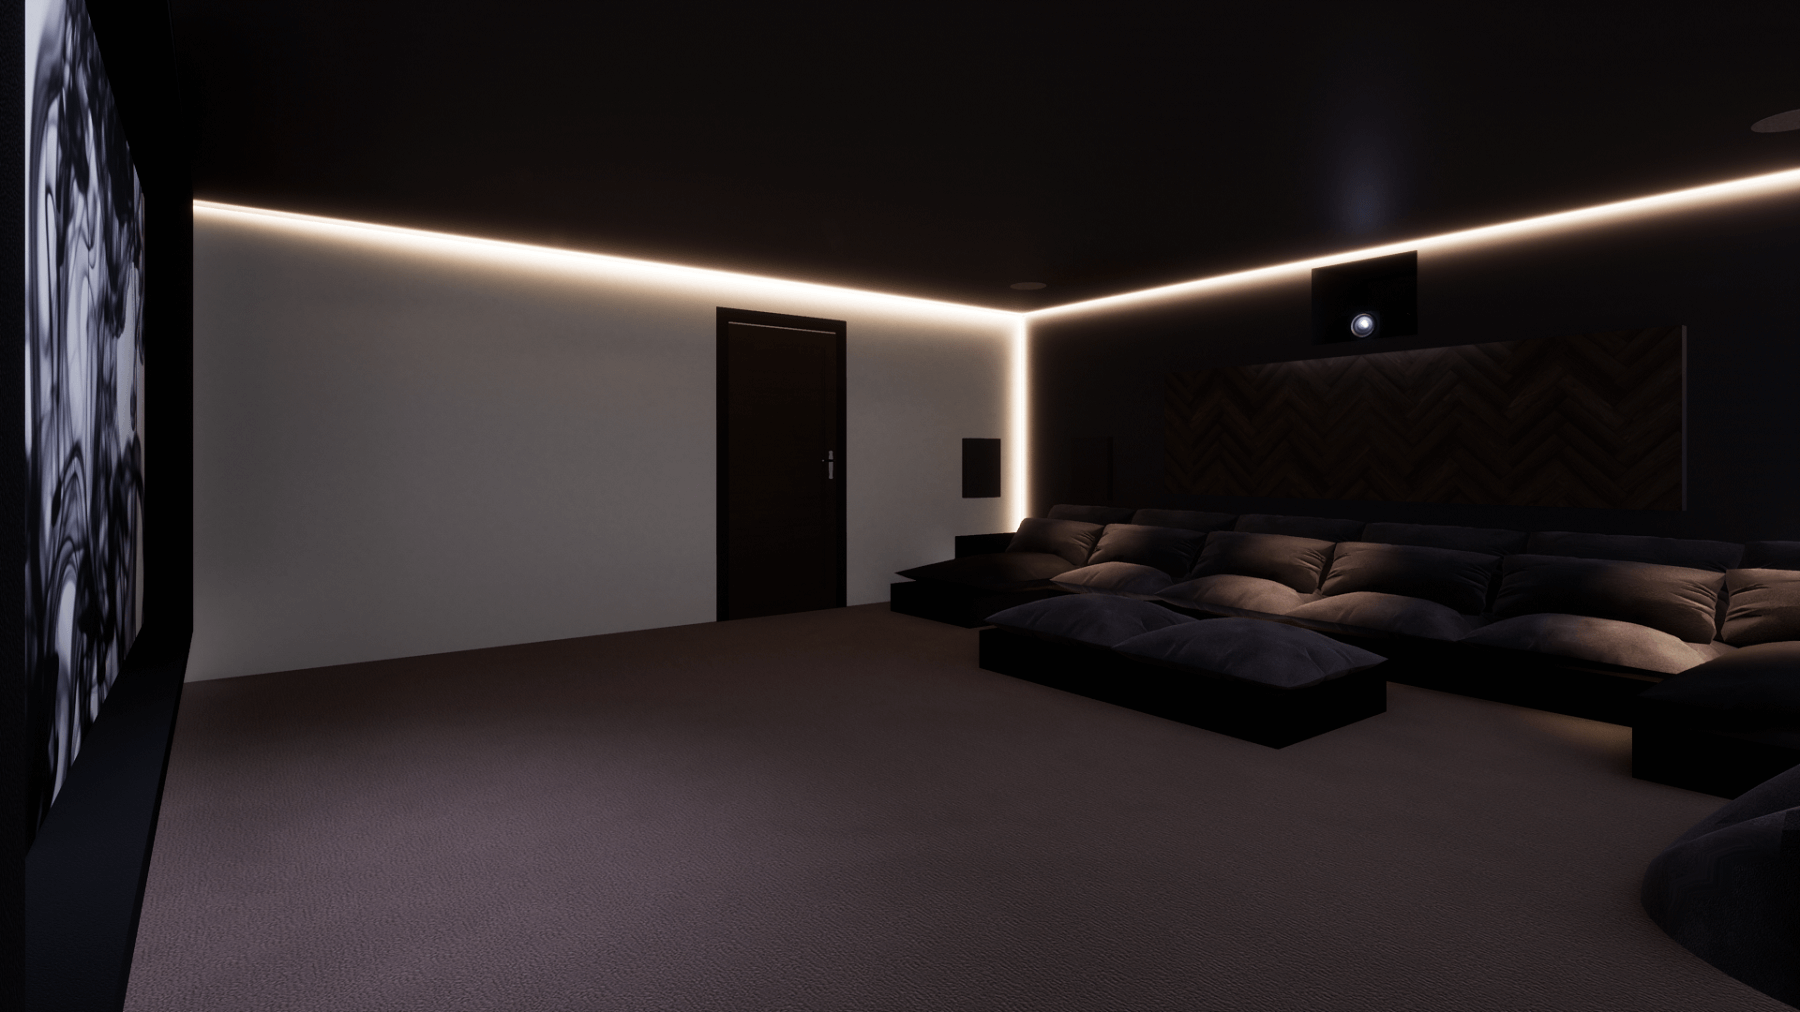 Double Garage Home Cinema Conversion